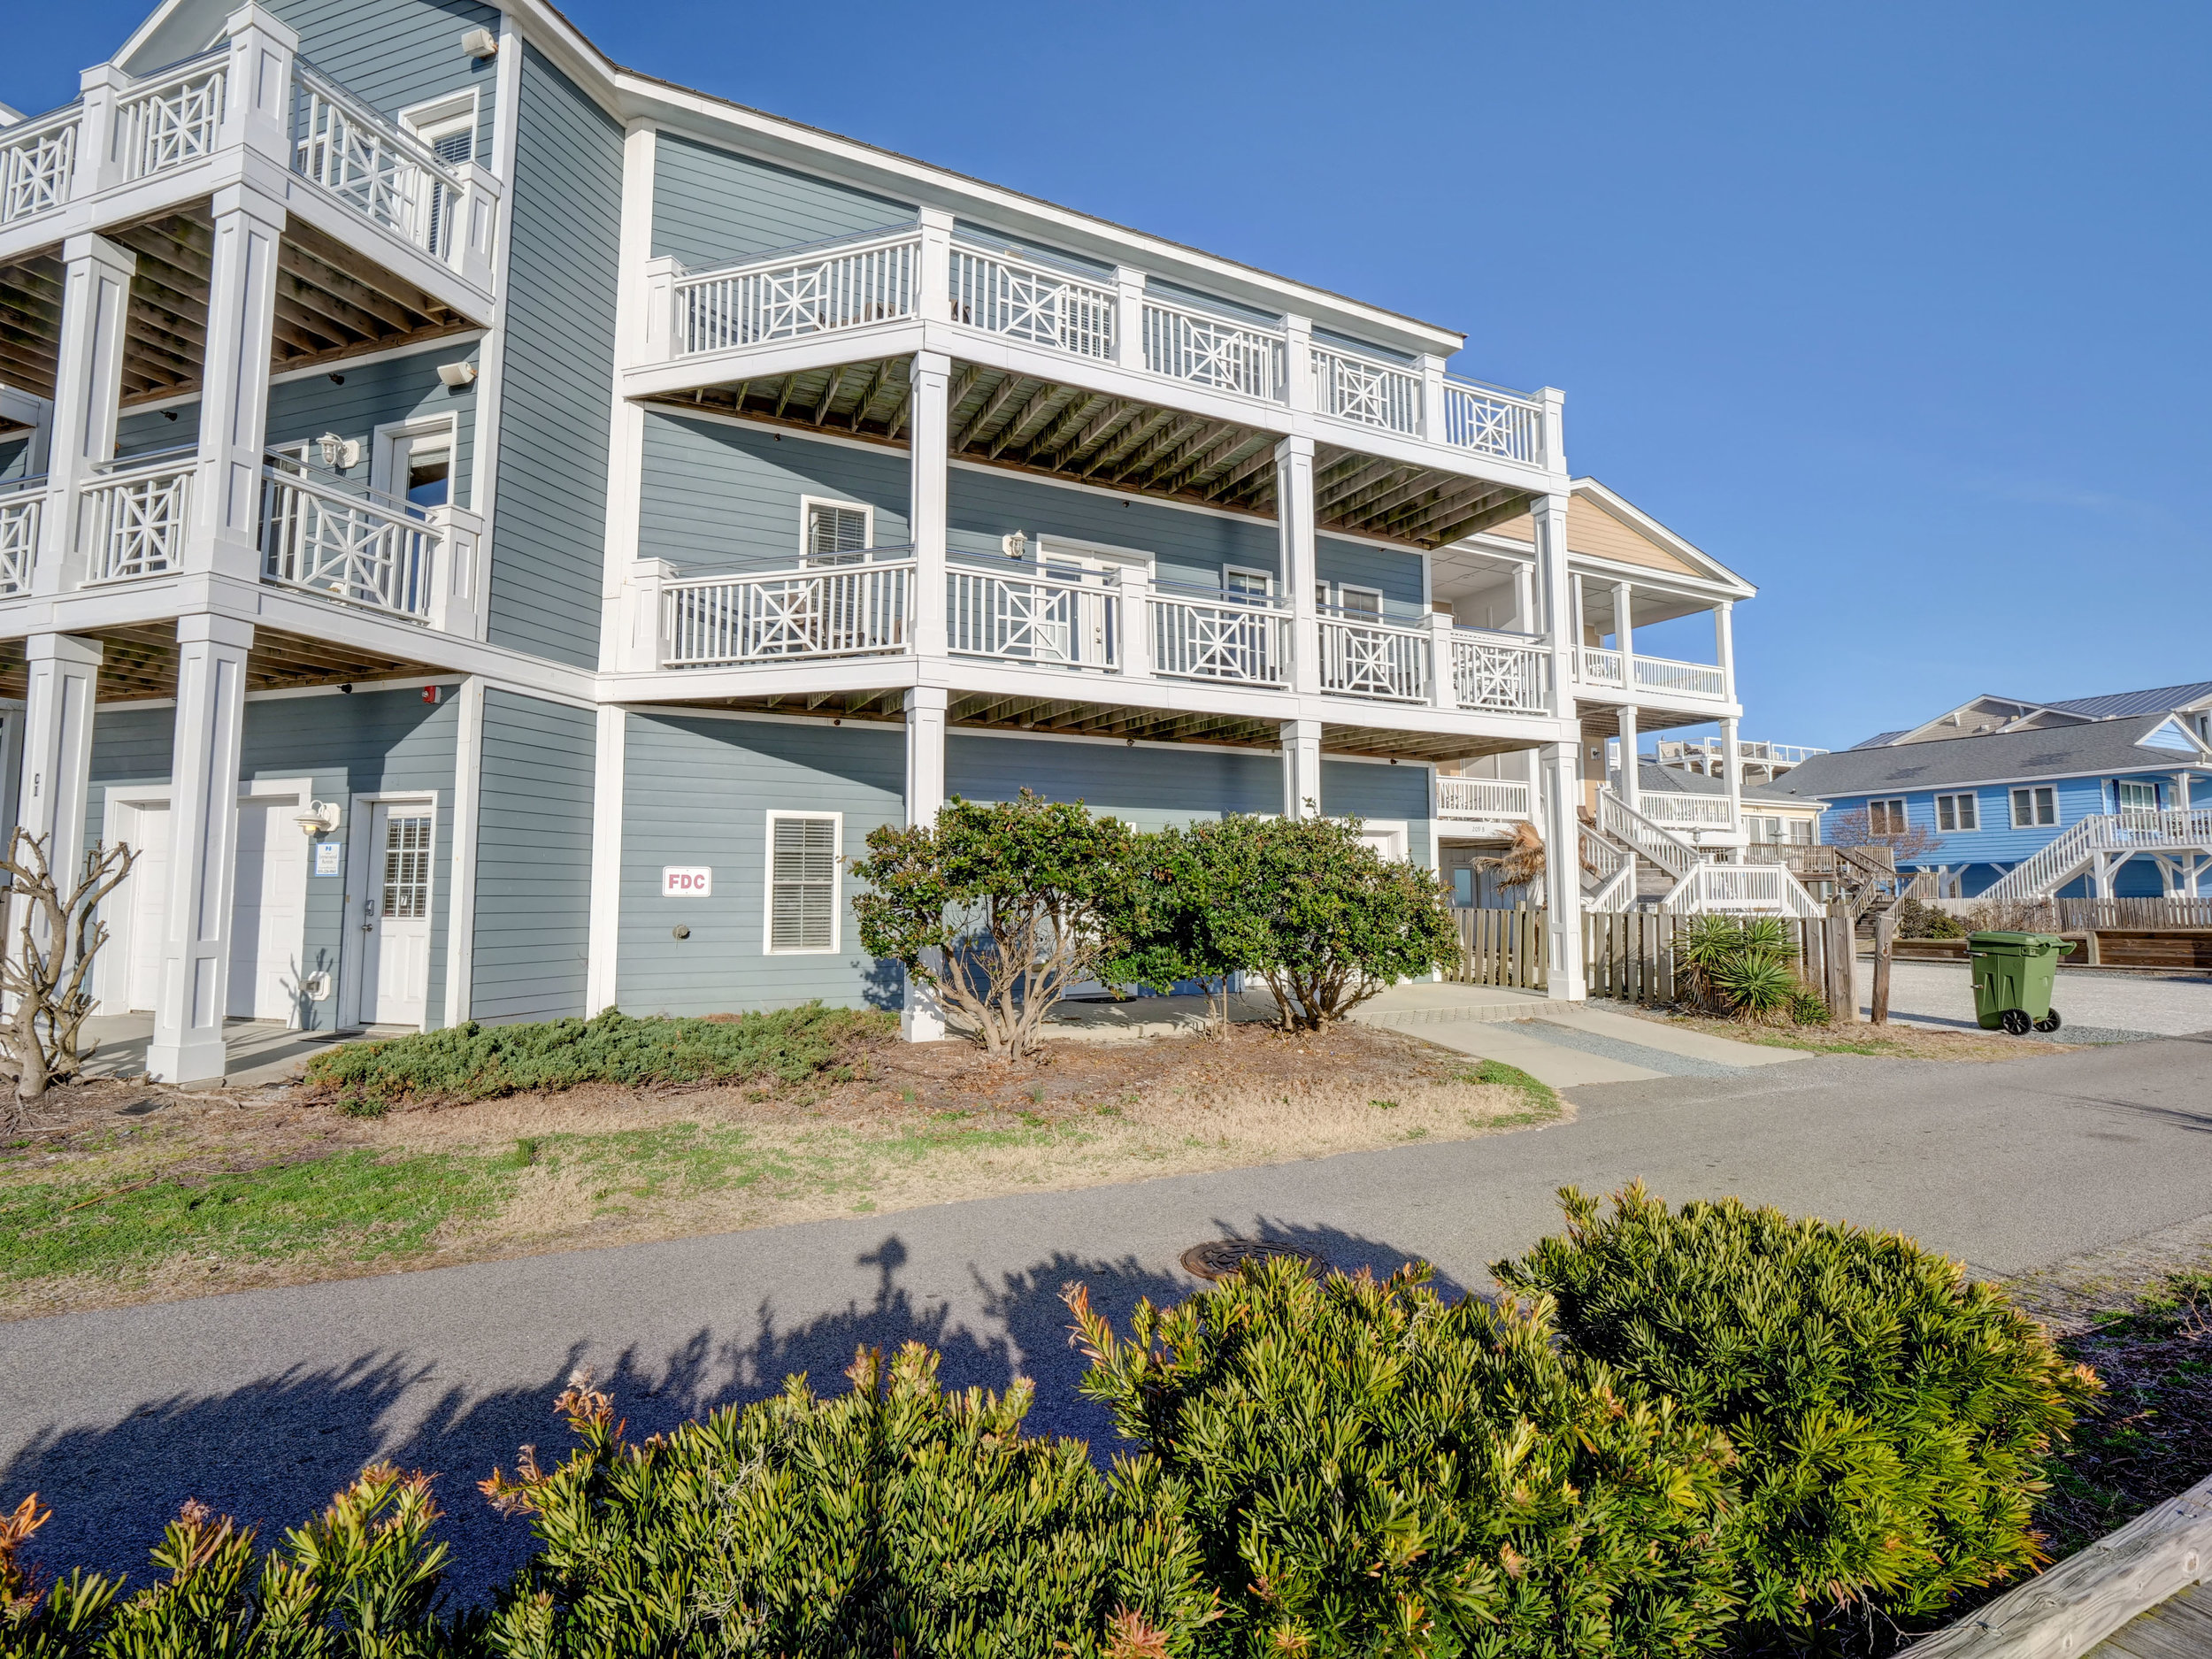 202 N Fort Fisher Blvd Unit 8-print-001-28-Kure Beach Villas 8 front-3709x2782-300dpi.jpg